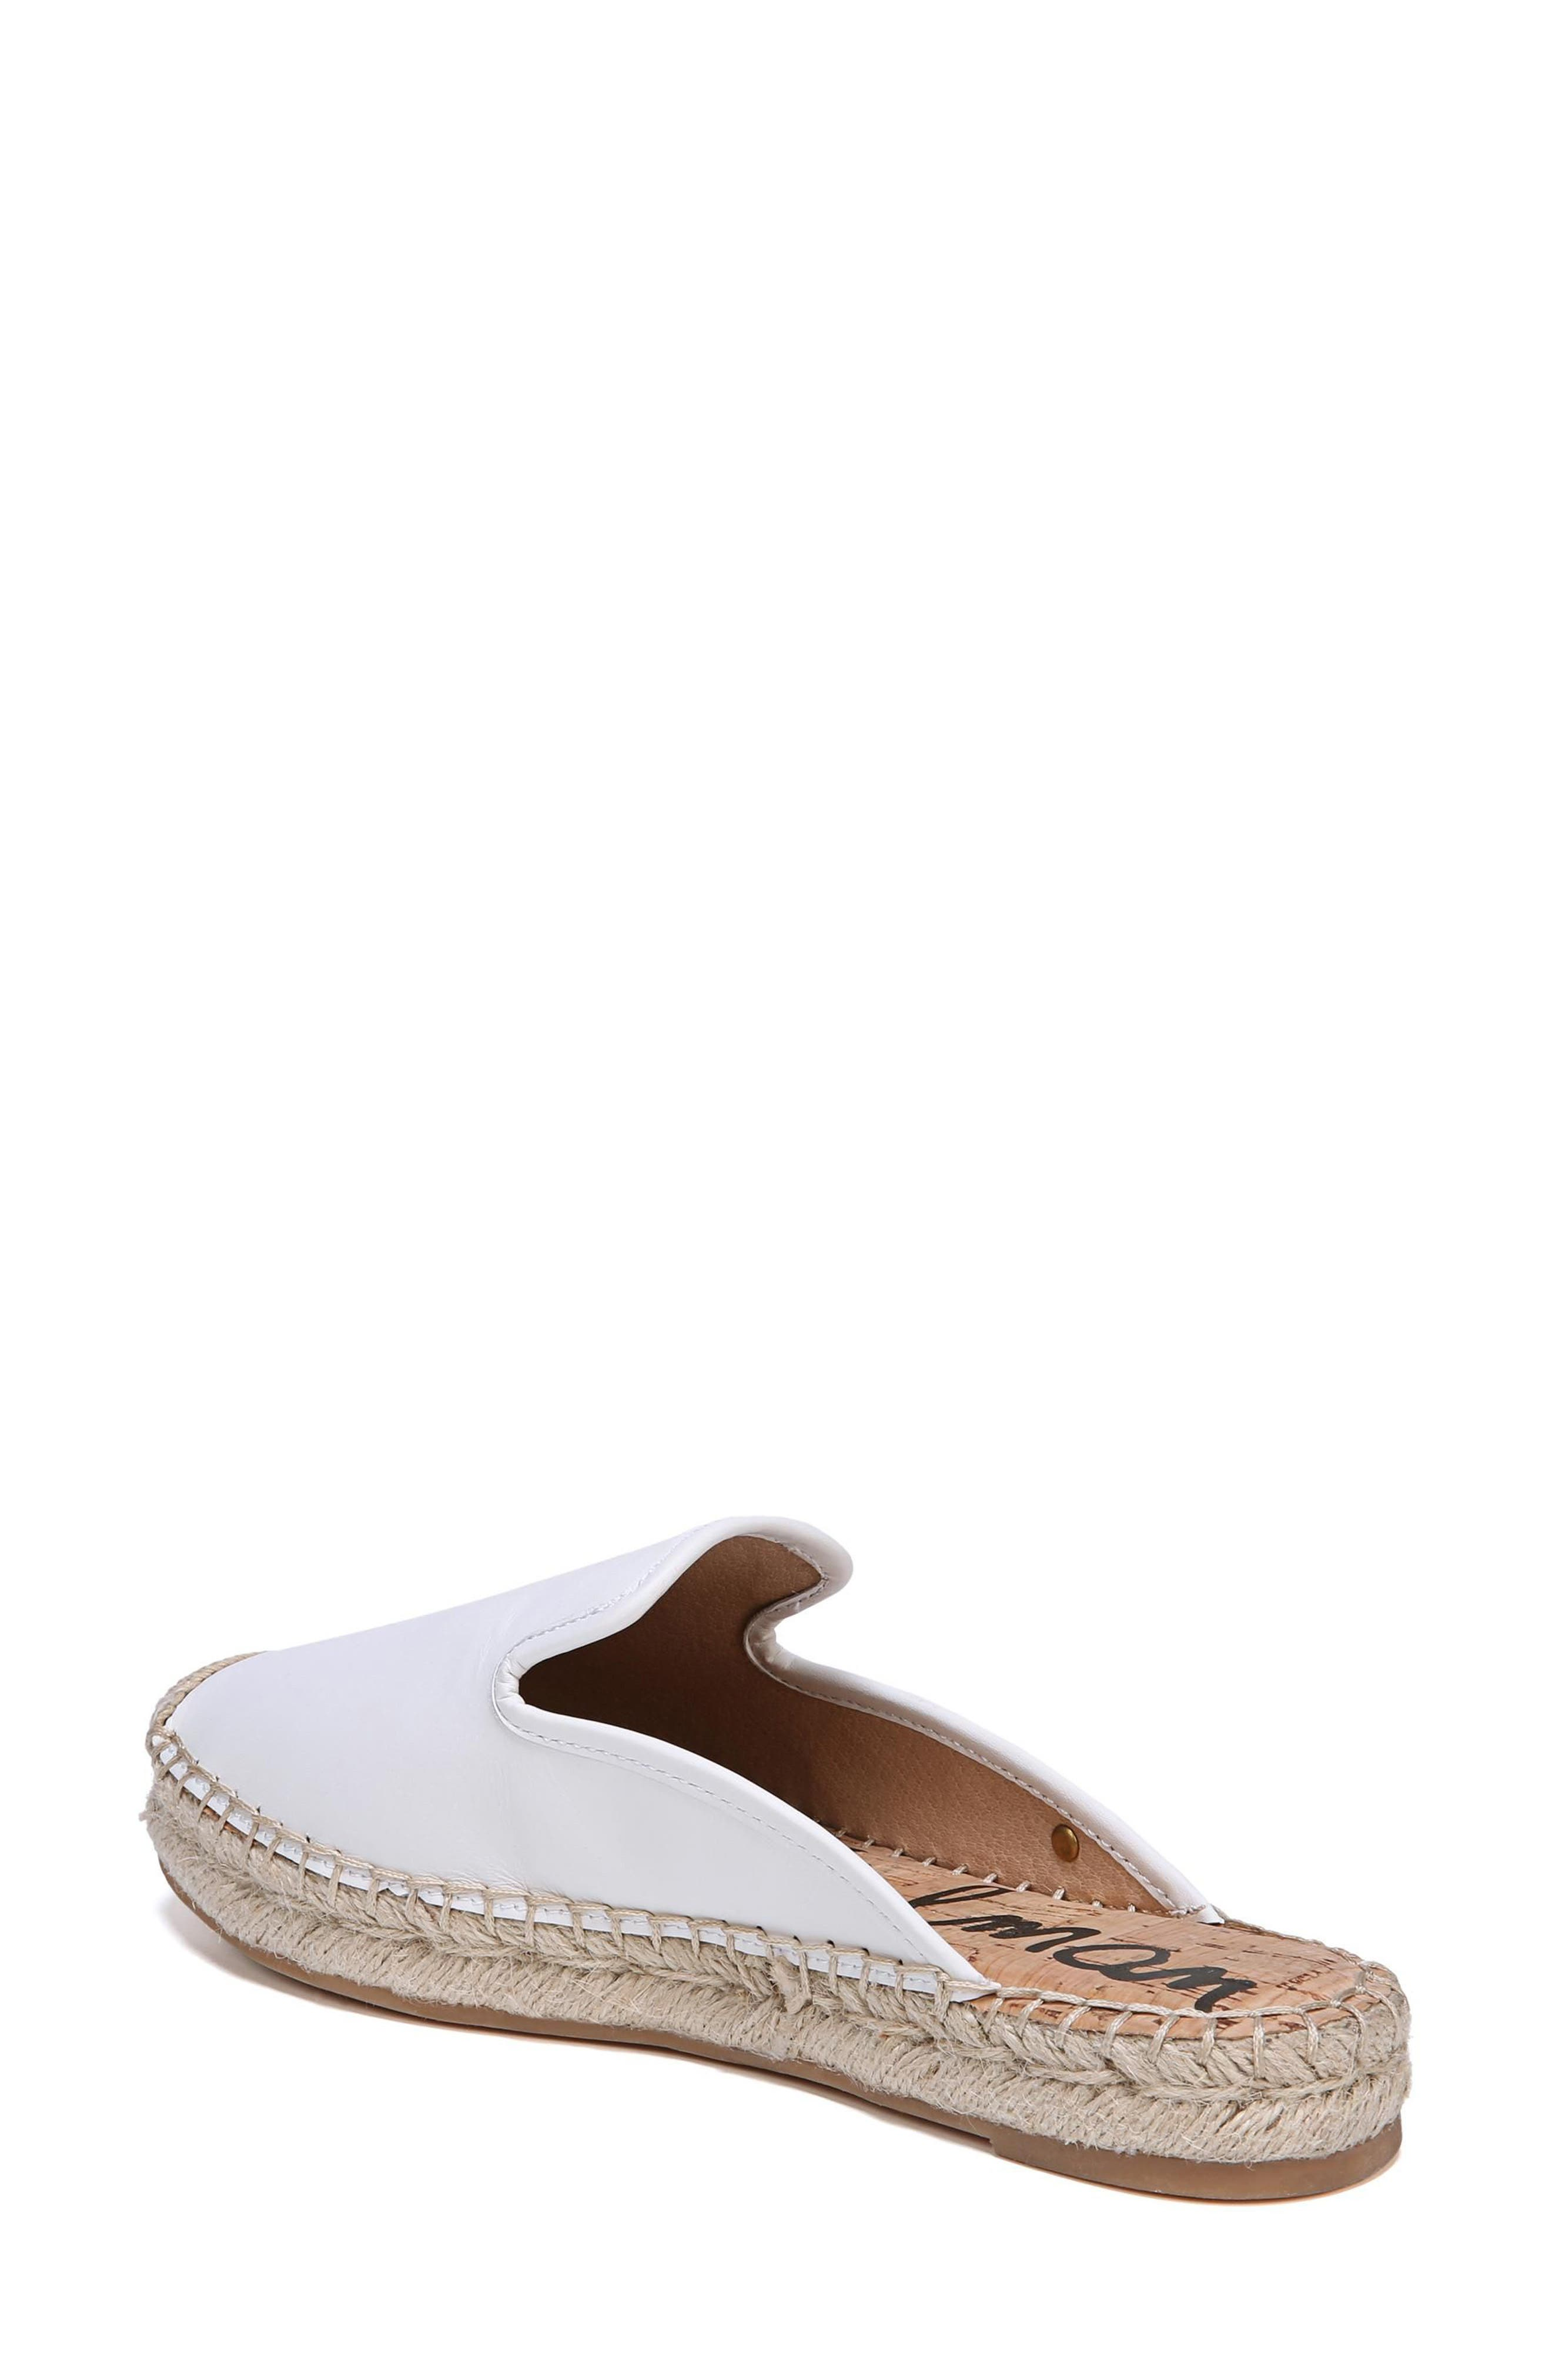 Kerry Espadrille Mule,                             Alternate thumbnail 2, color,                             Bright White Leather